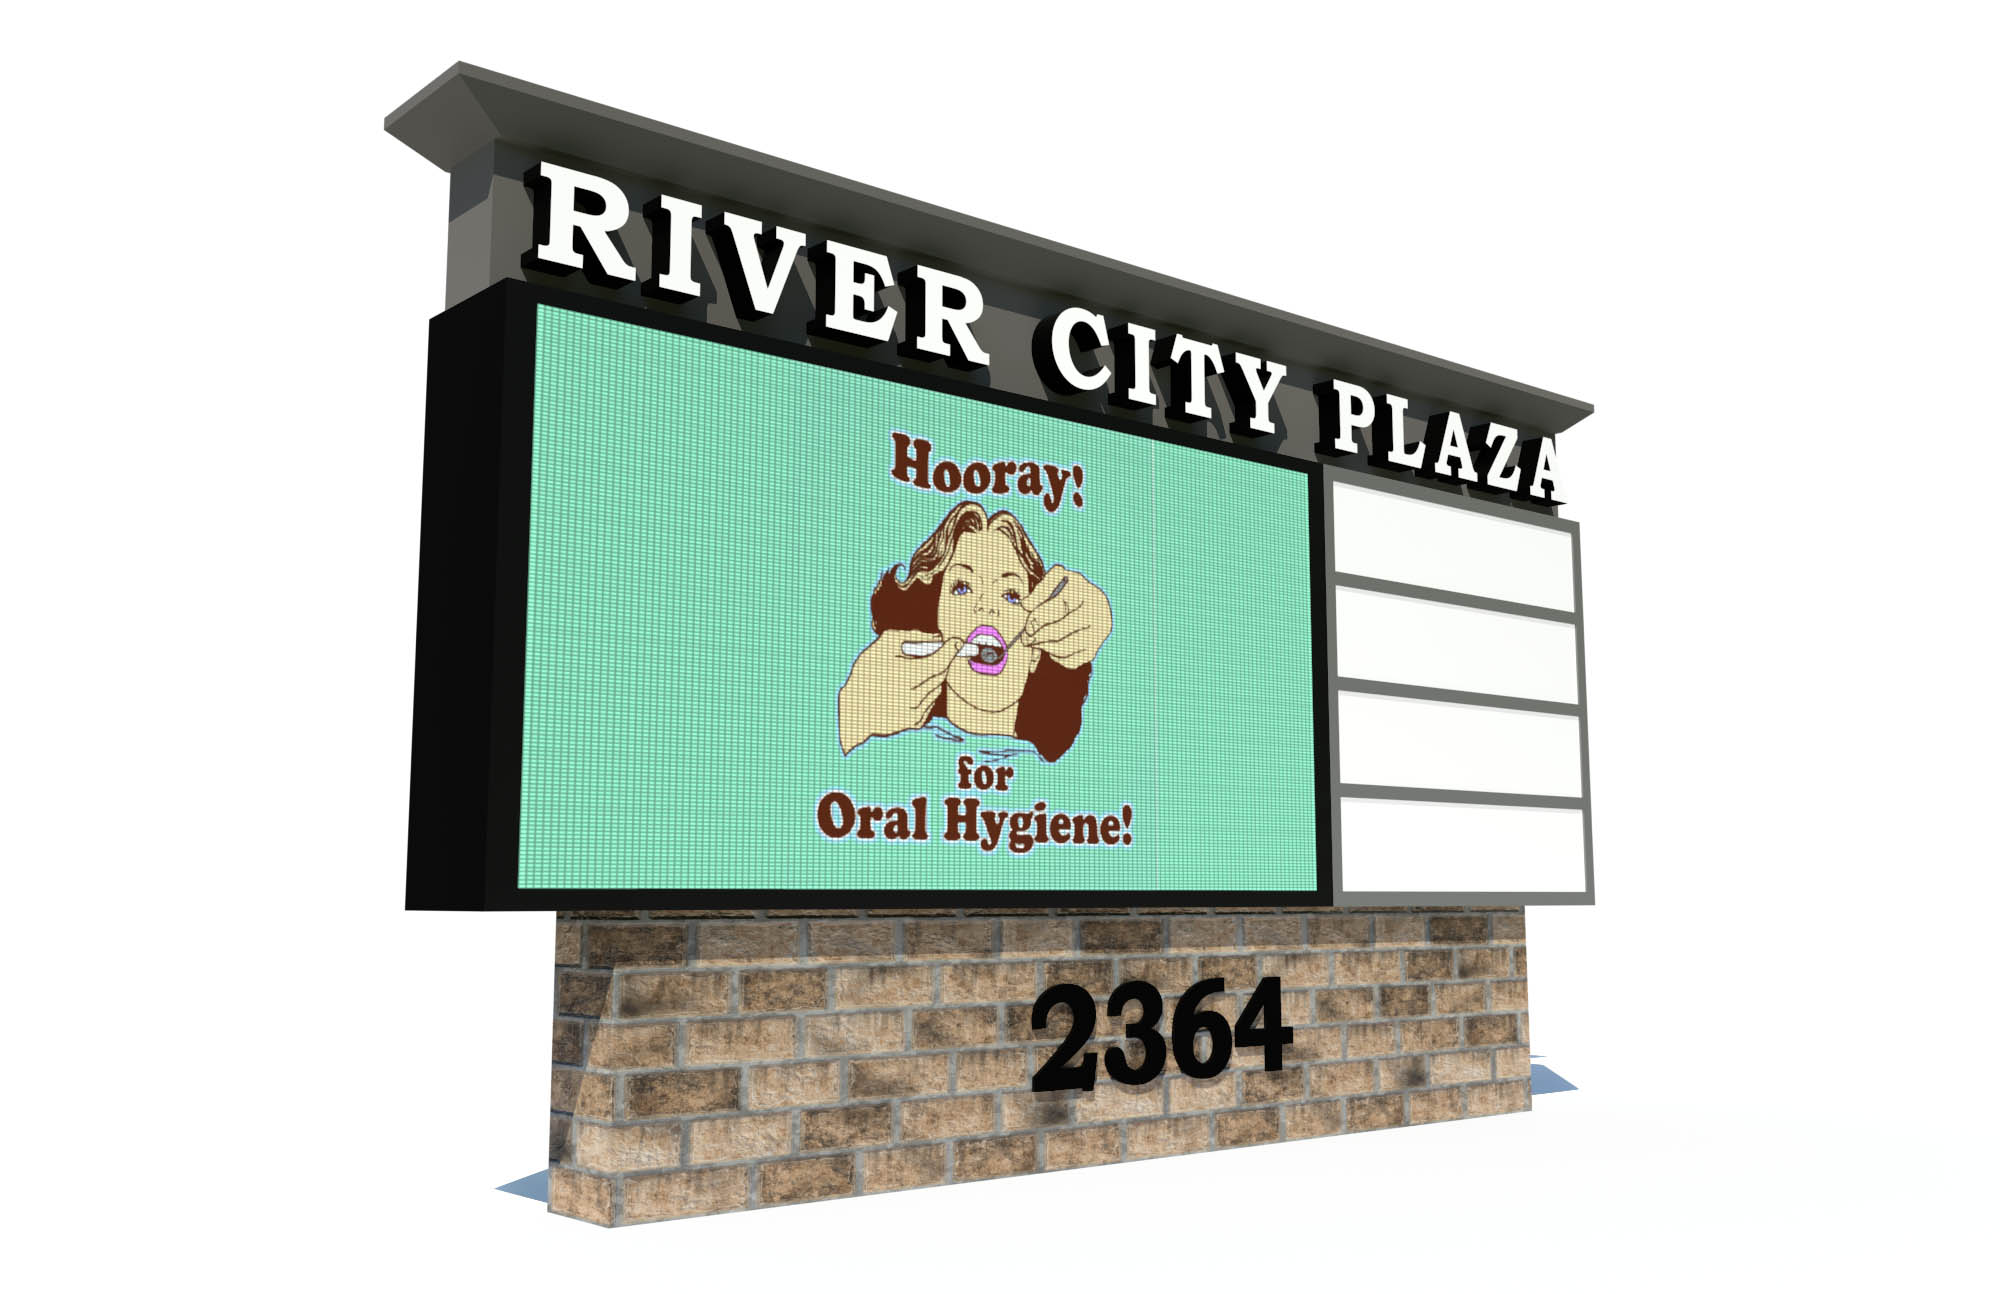 3D Render: River City Plaza